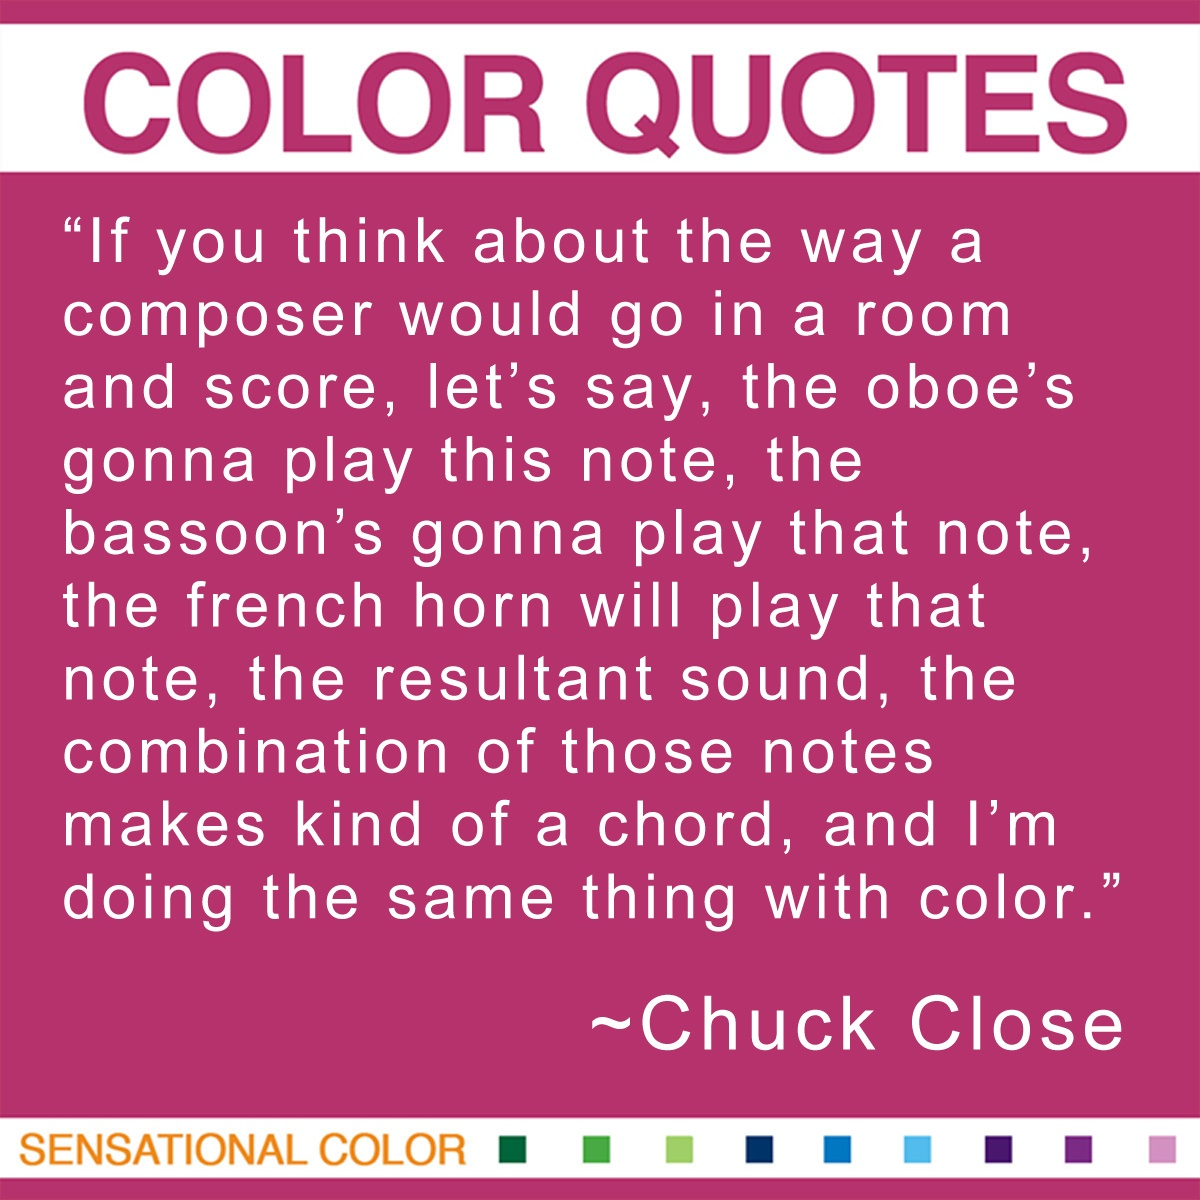 """If you think about the way a composer would go in a room and score, let's say, the oboe's gonna play this note, the bassoon's gonna play that note, the french horn will play that note, the resultant sound, the combination of those notes makes kind of a chord, and I'm doing the same thing with color."" - Chuck Close"